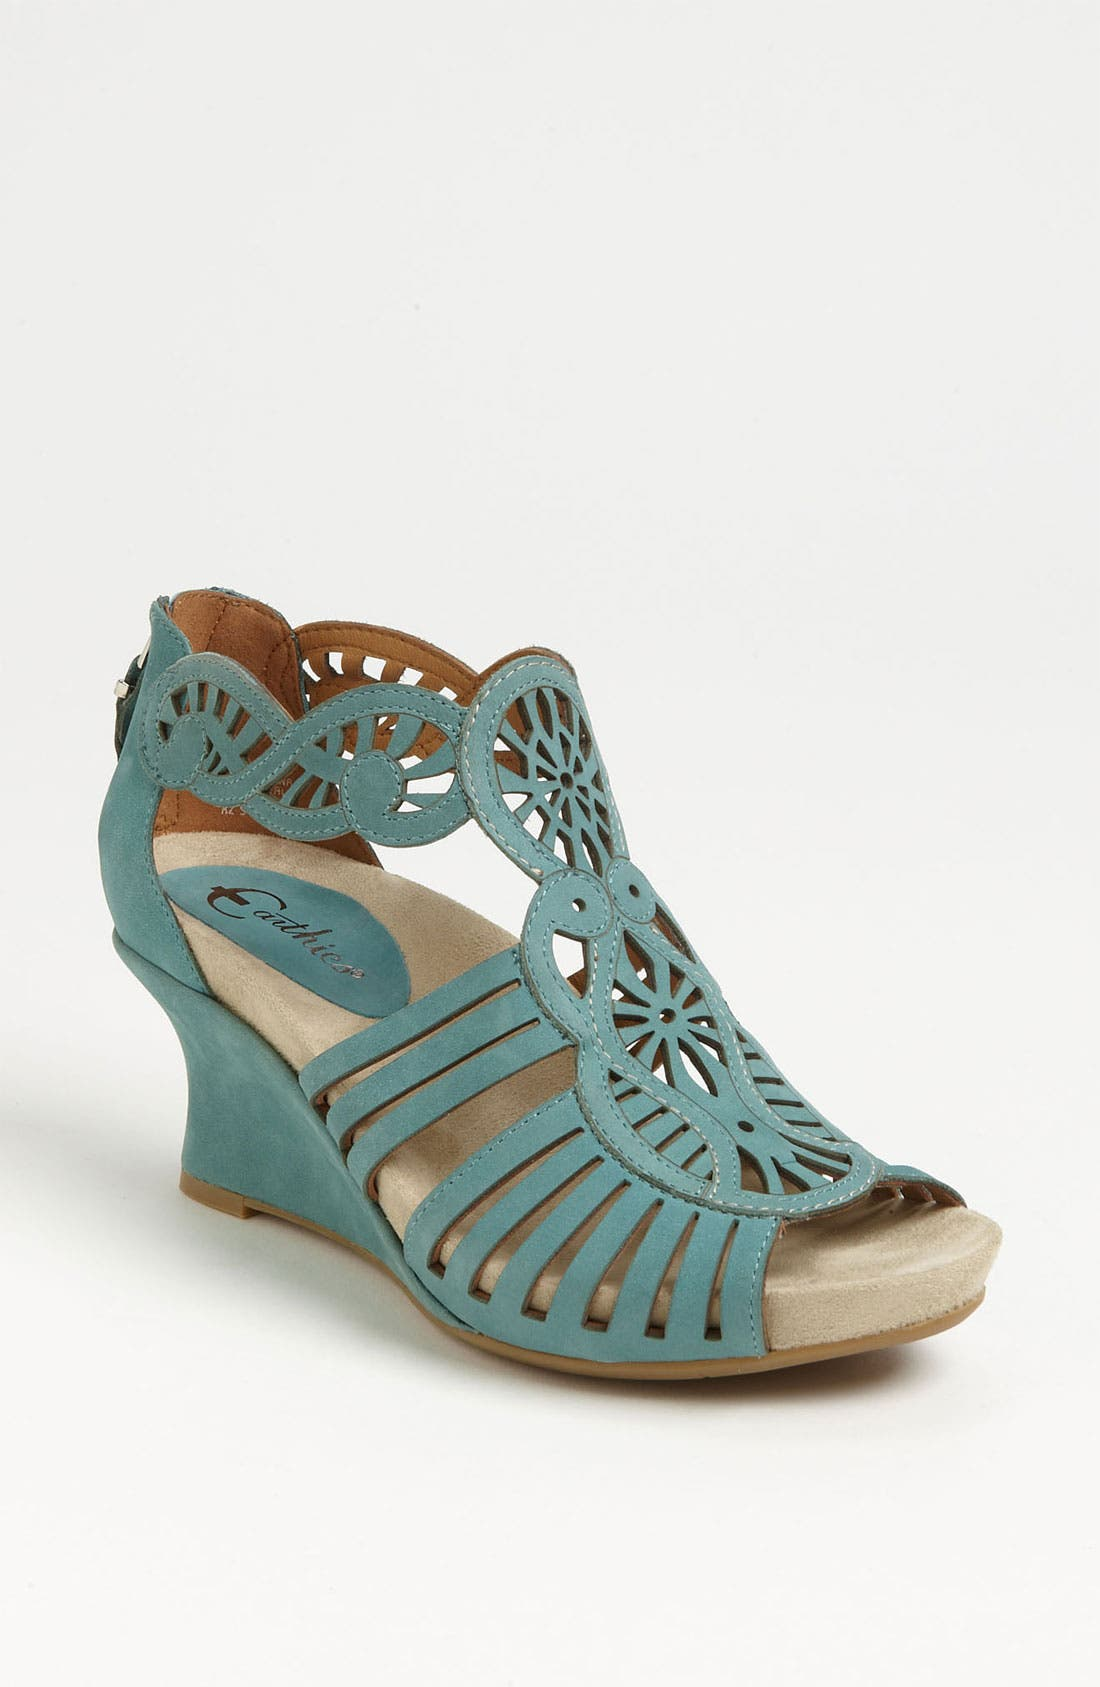 'Caradonna' Sandal,                             Main thumbnail 1, color,                             Light Teal